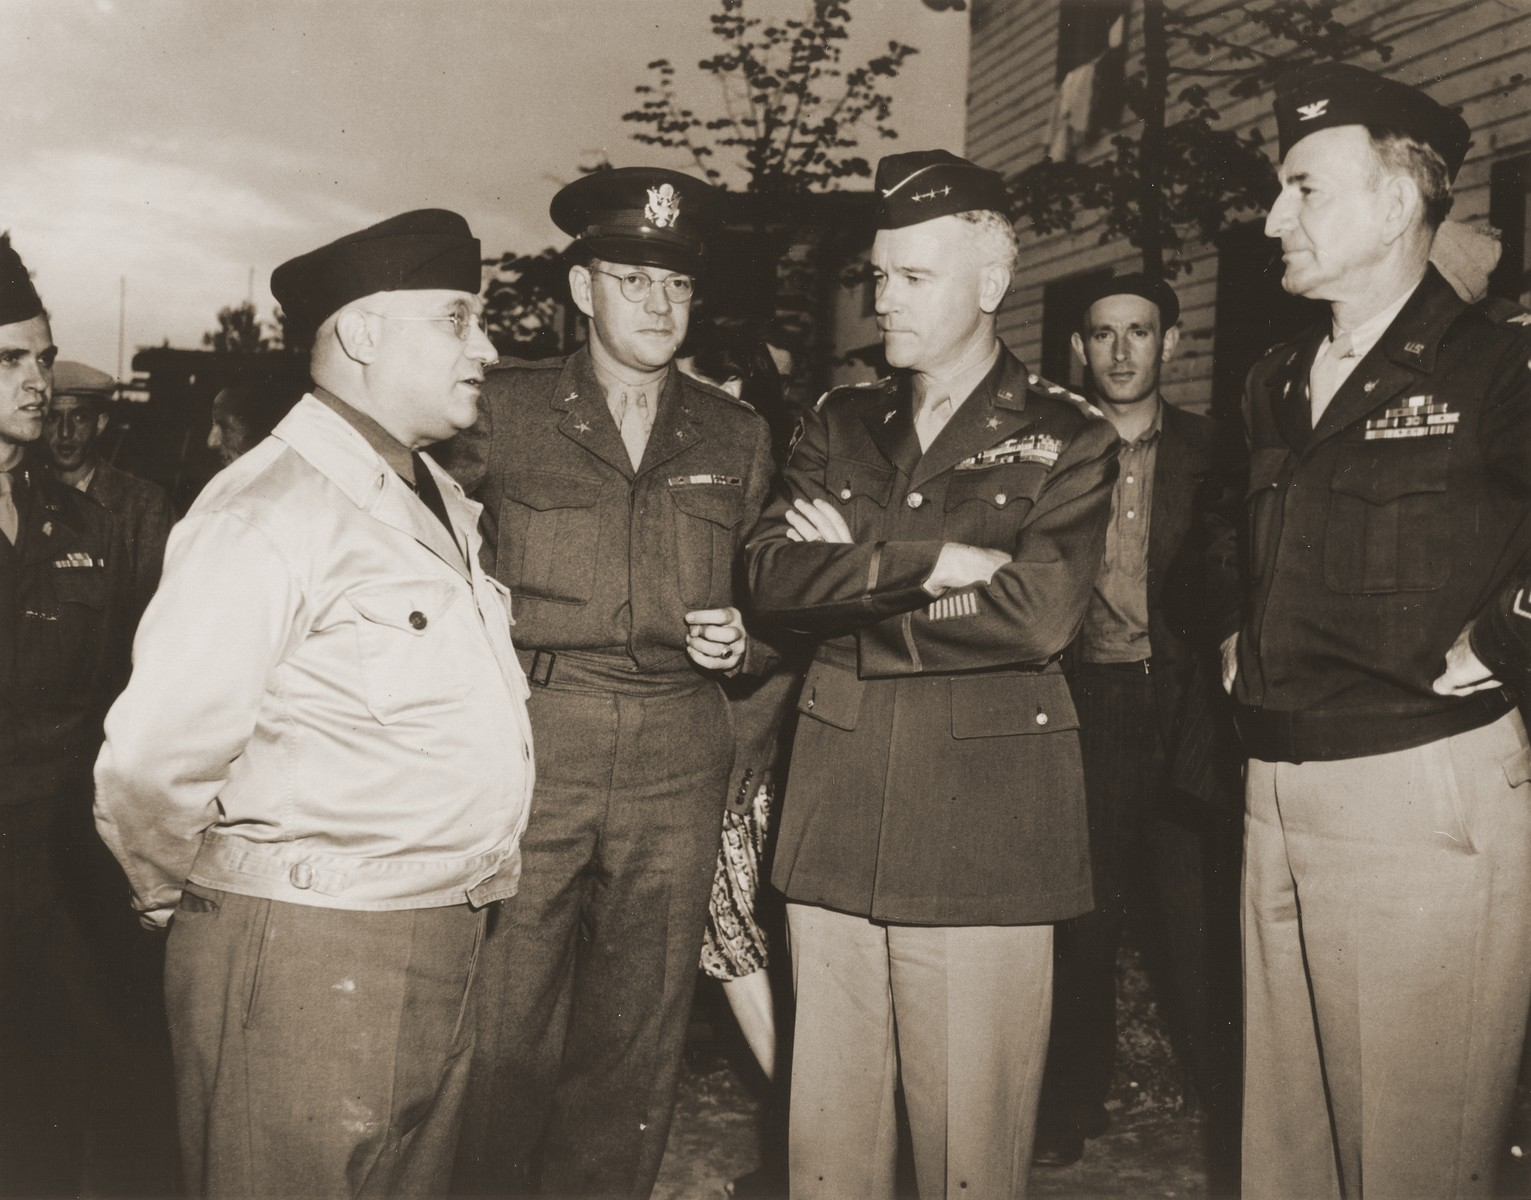 Harold Fishbein, director of the Schlachtensee displaced persons camp, converses with Lt. General Lawton Collins during an official tour the DP camp.  Pictured from left to right are Rabbi Mayer Abramowitz, Harold Fishbein, unknown, Lt. General Lawton Collins, and an aide to the general.